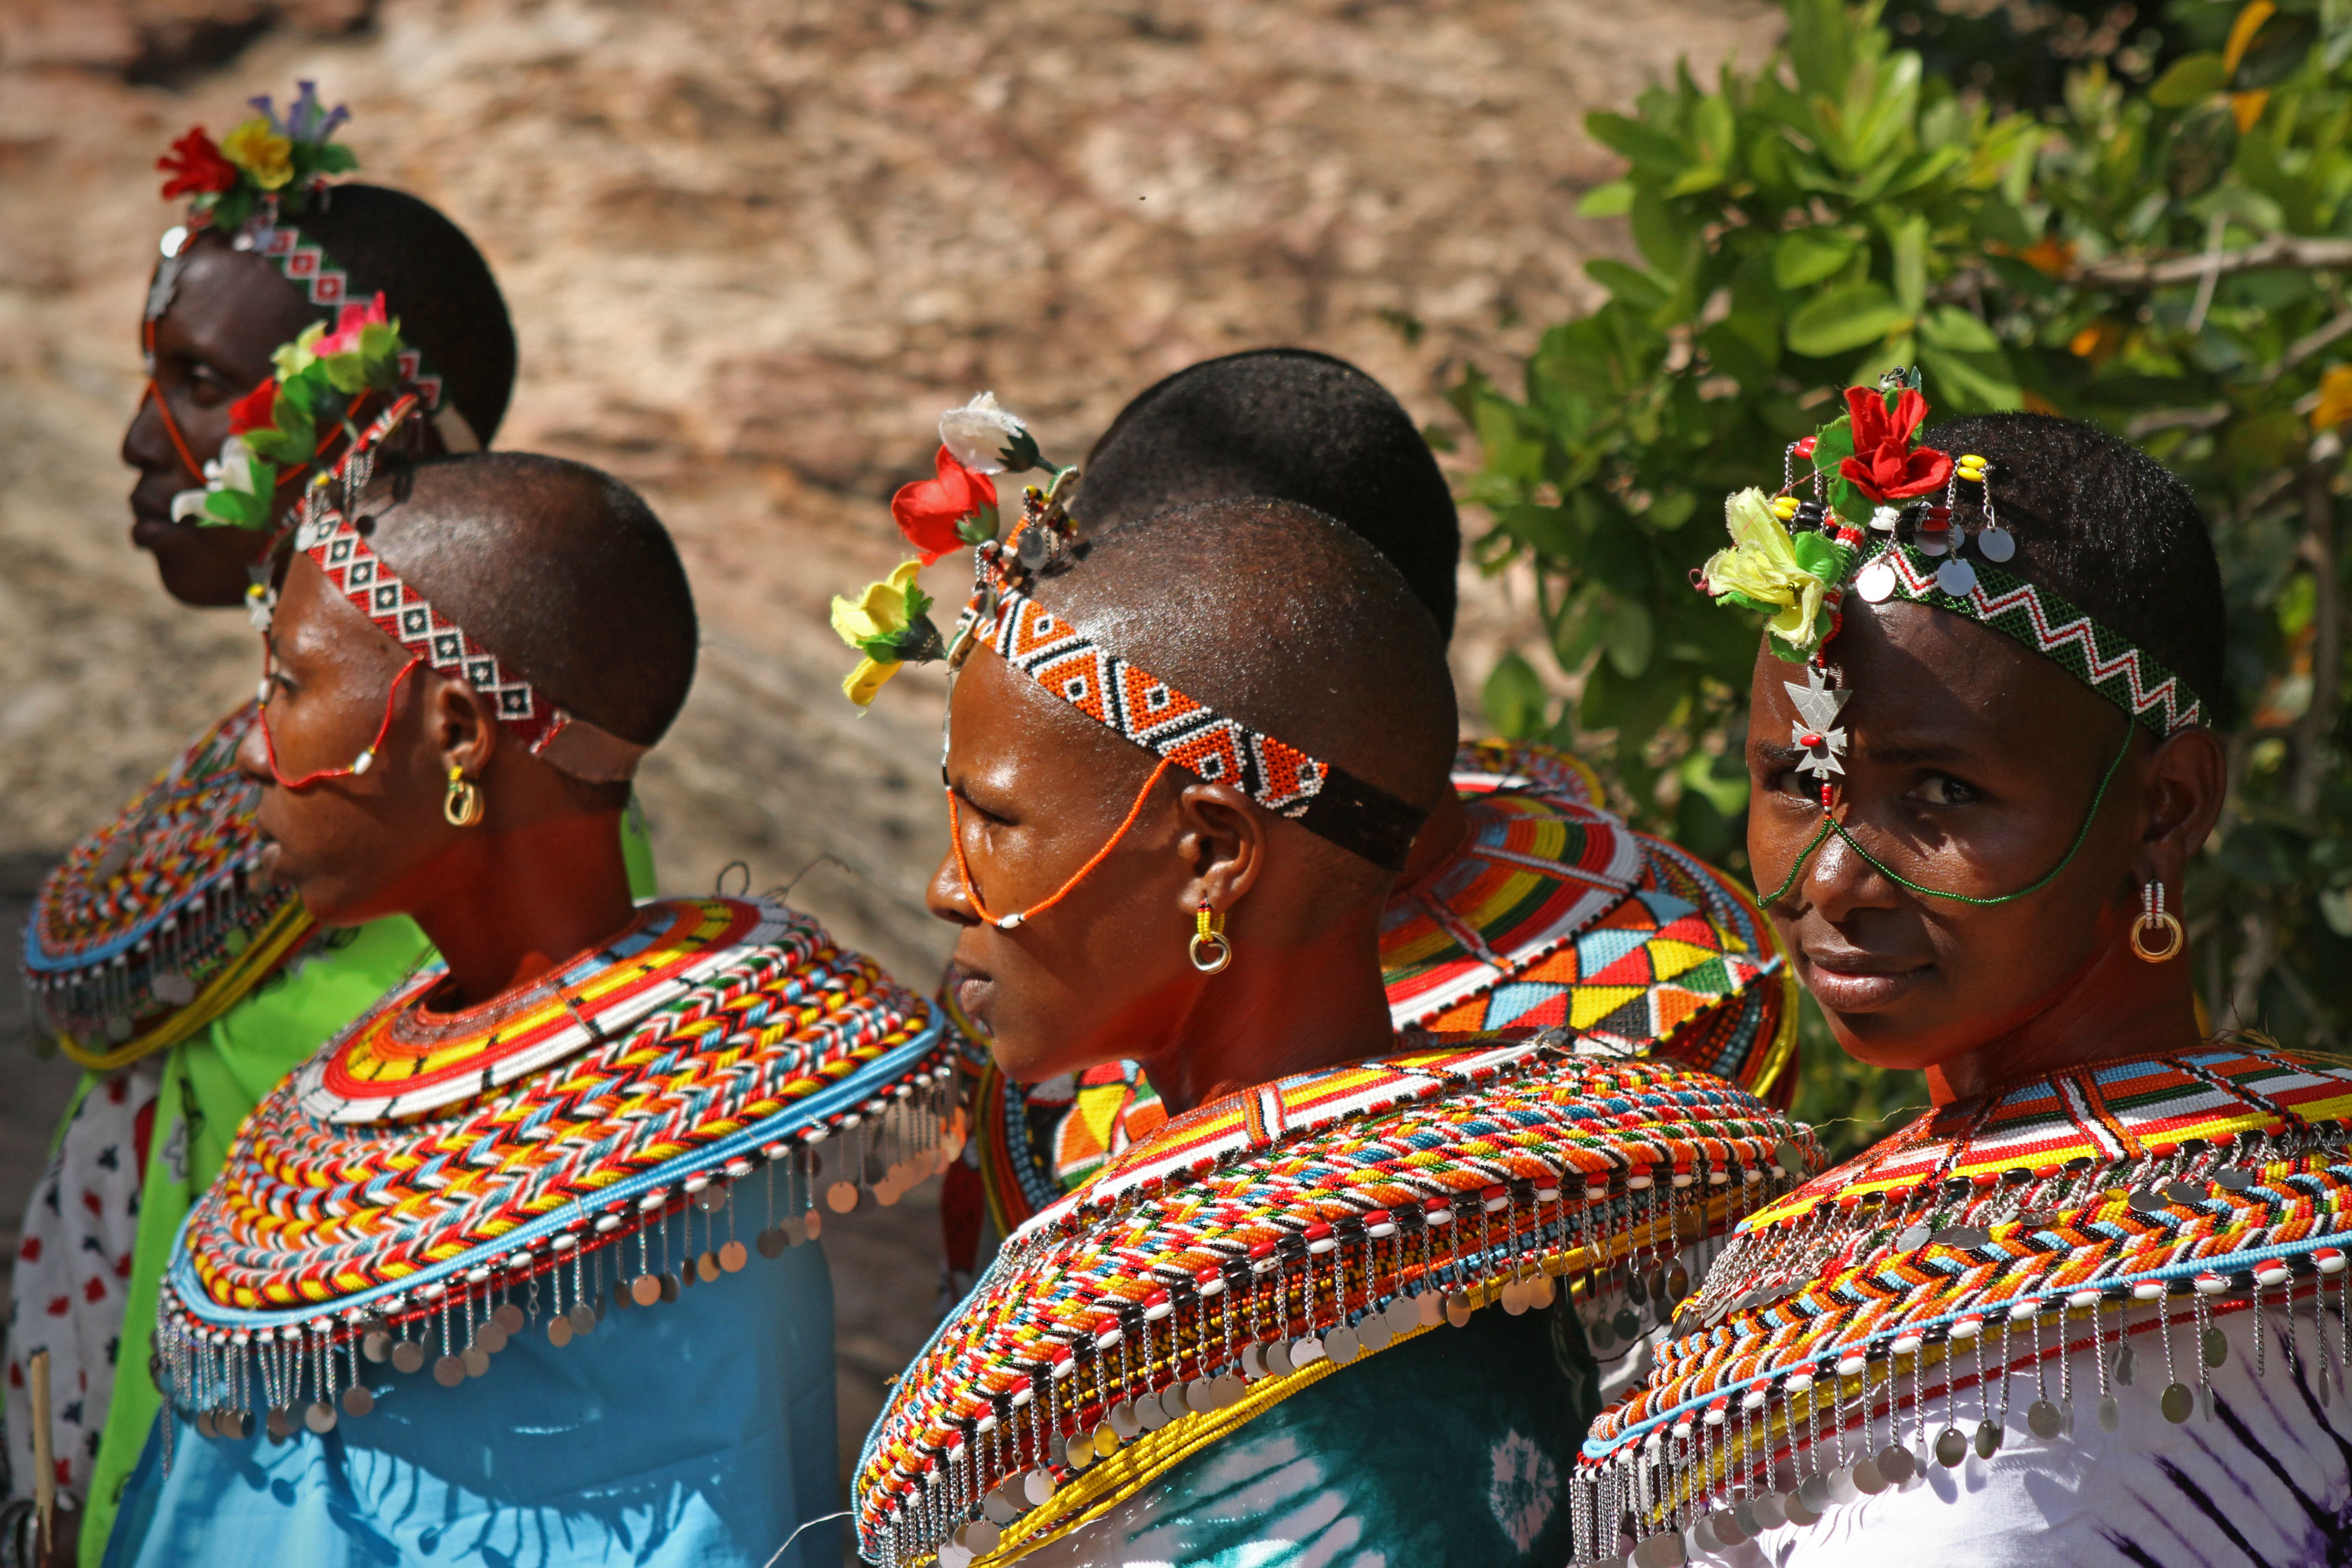 CULTURAL VISITS TO THE SAMBURU AND TURKANA COMMUNITIES